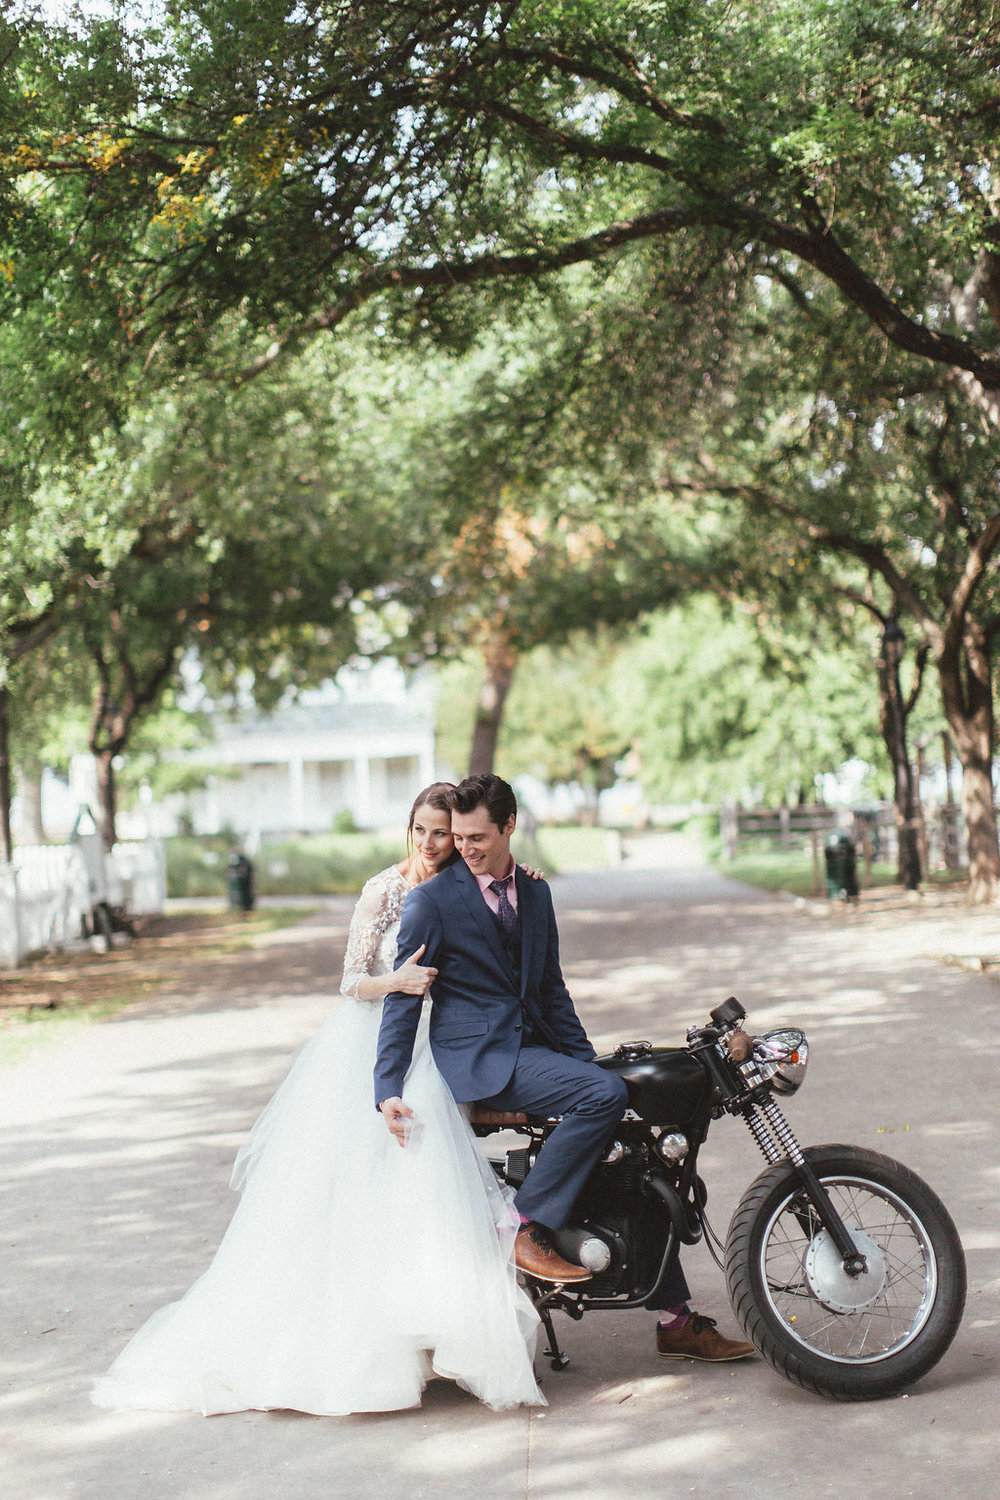 Bride and Groom on a motorcycle // Dallas Wedding Floral Design